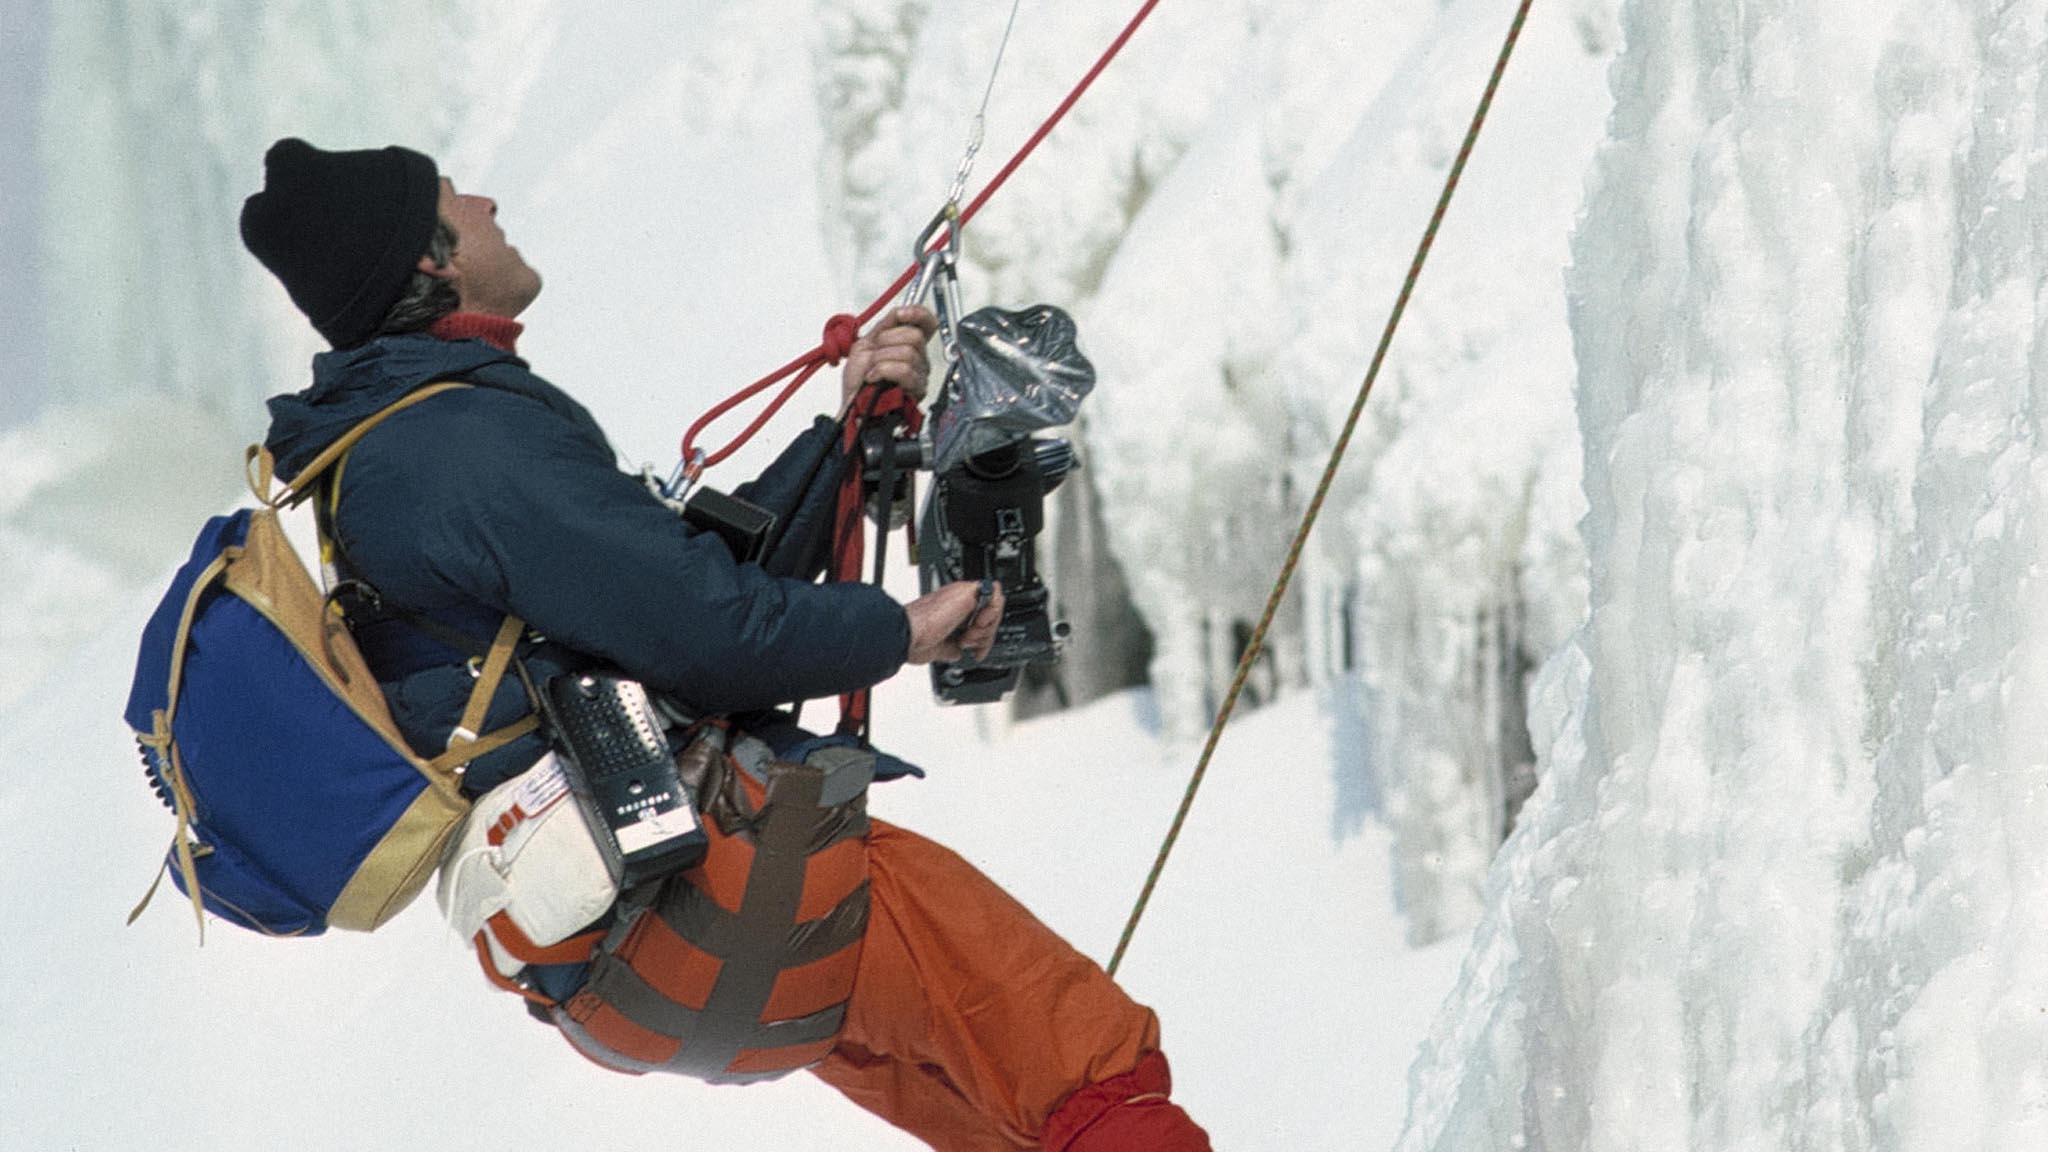 Views from the Top: The NFB and Mountaineering